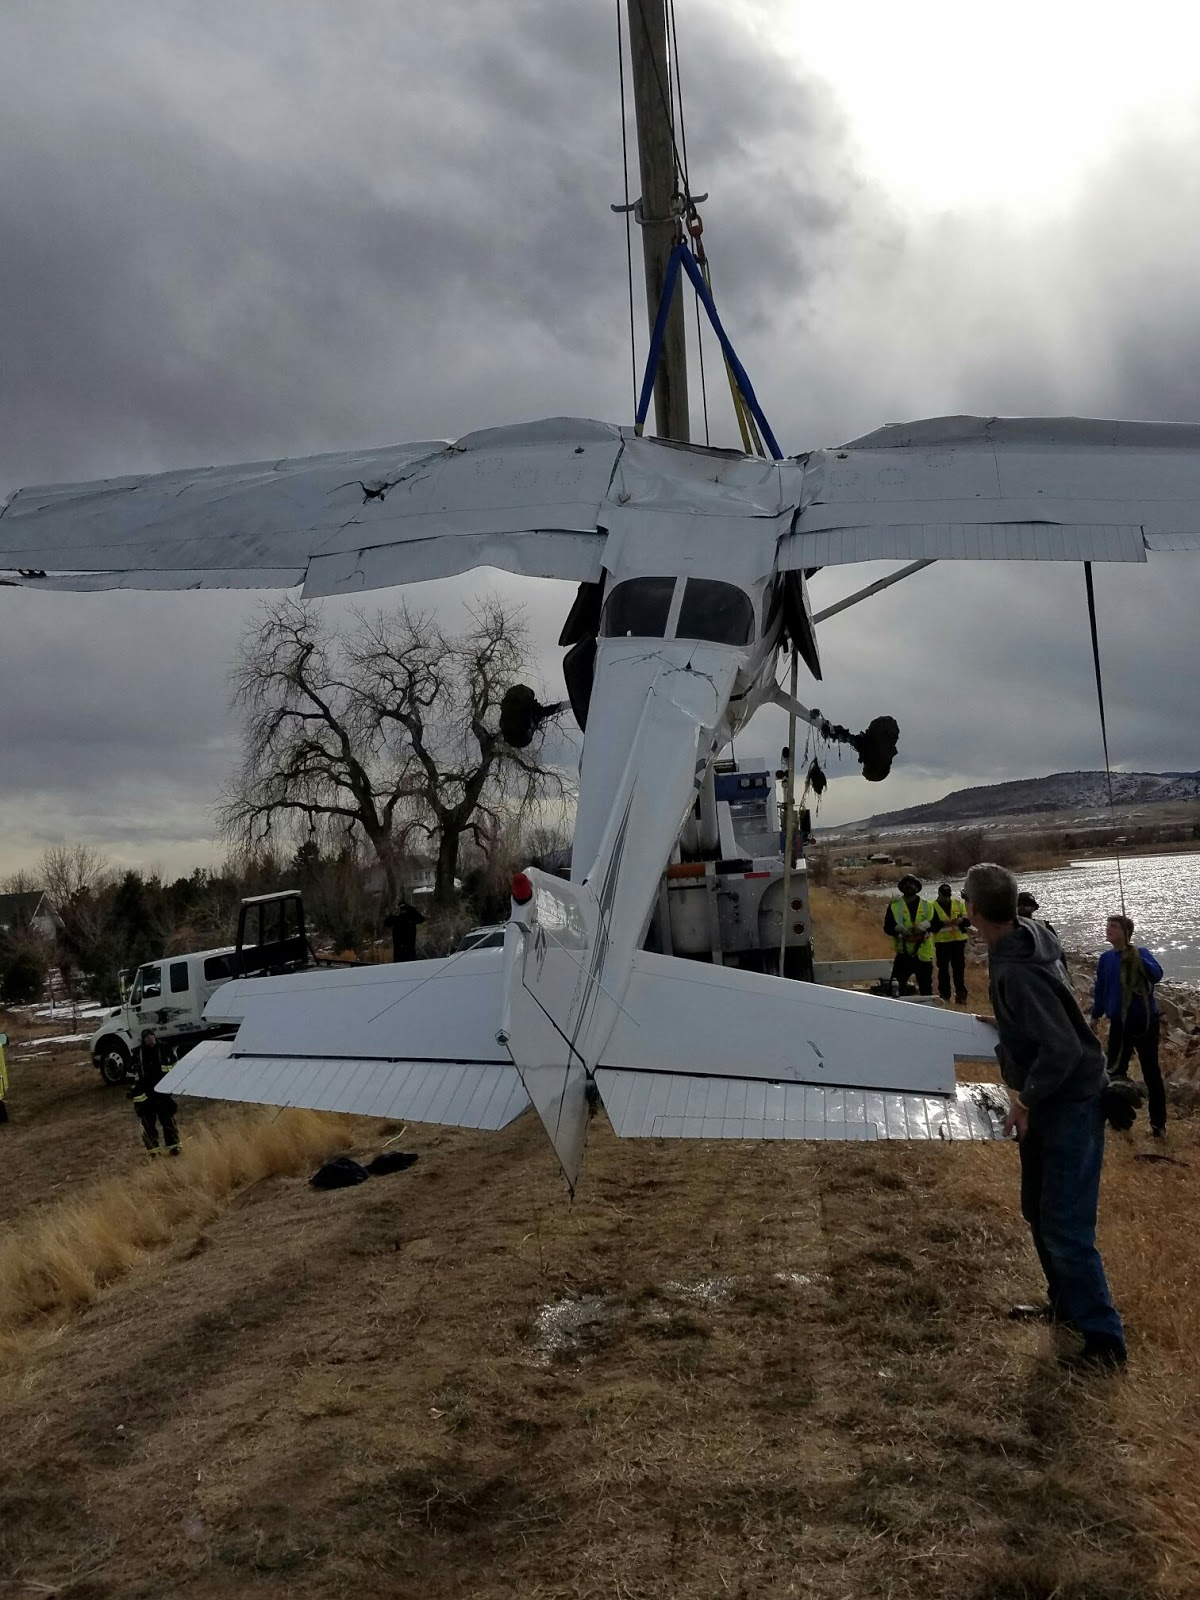 Kathryn's Report: Cessna 172S Skyhawk, owned by McAir